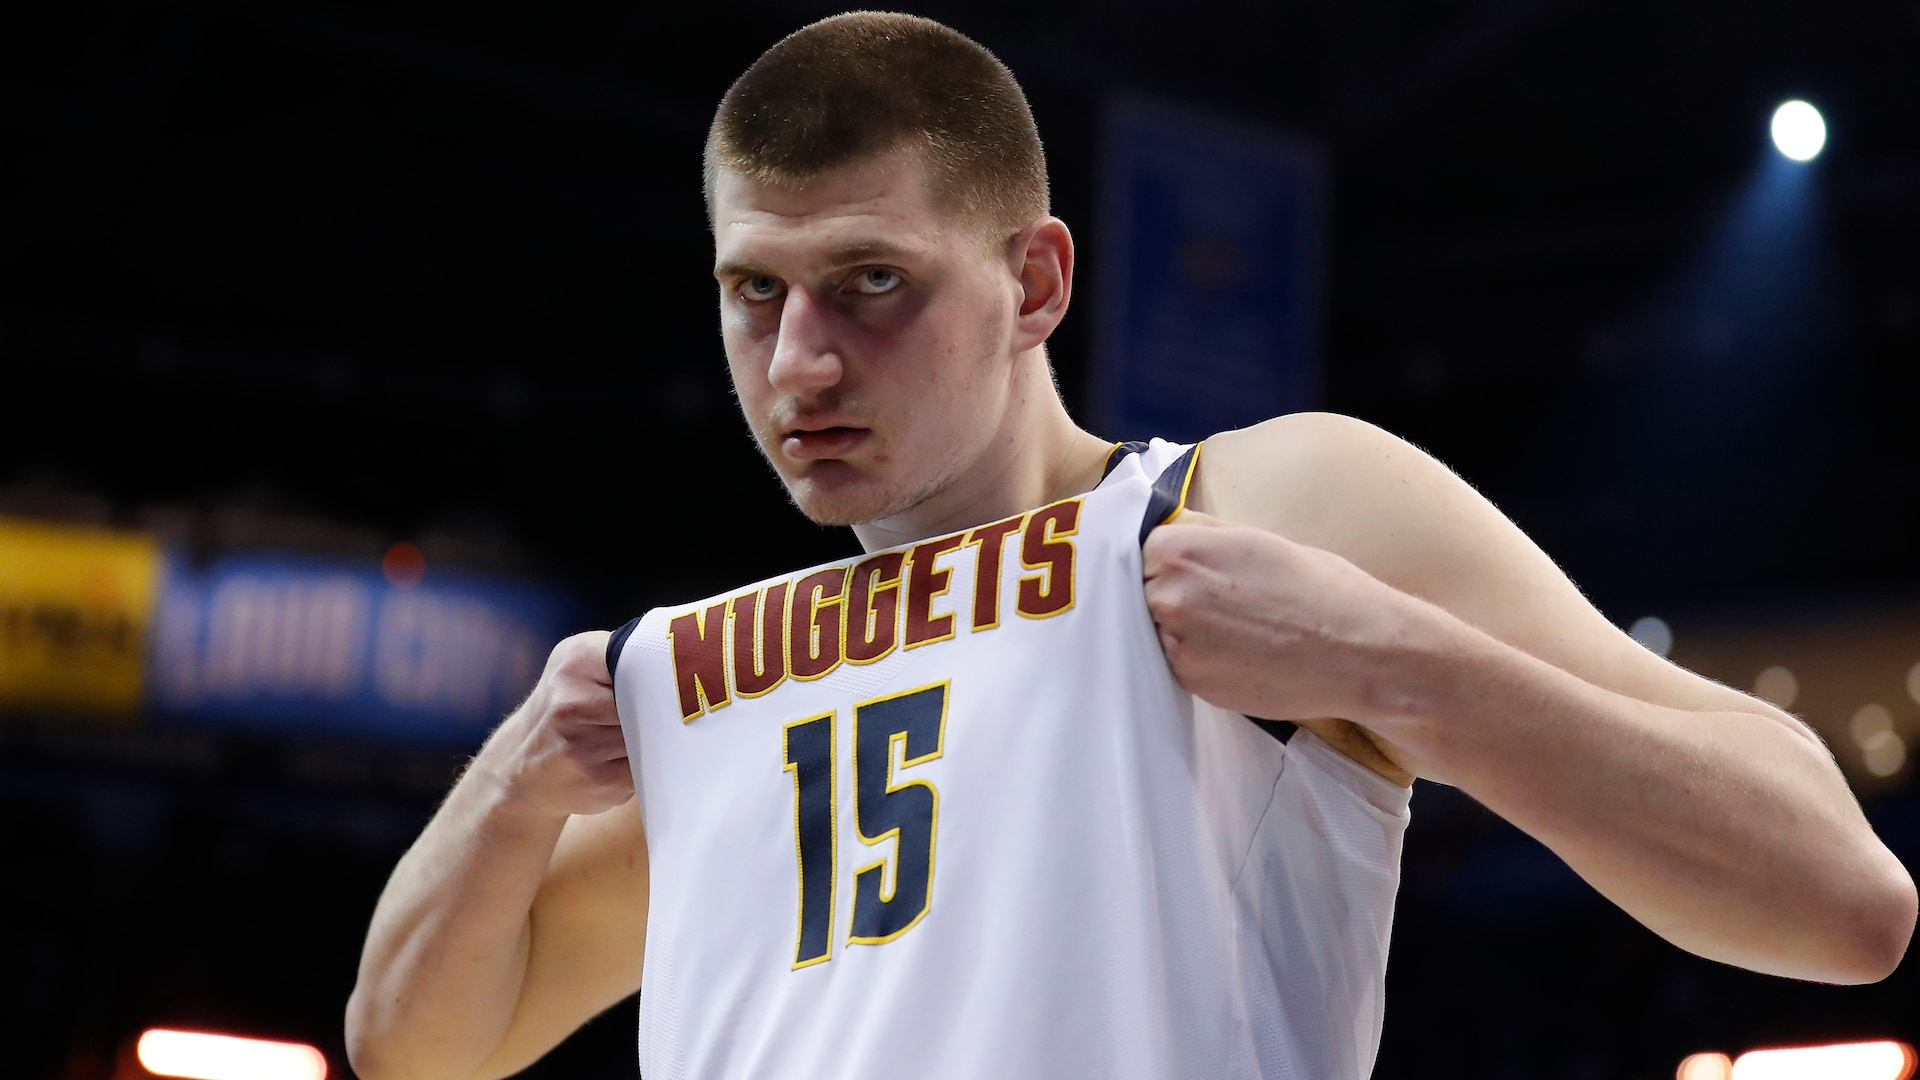 Report: Nuggets' Nikola Jokic tests positive for coronavirus